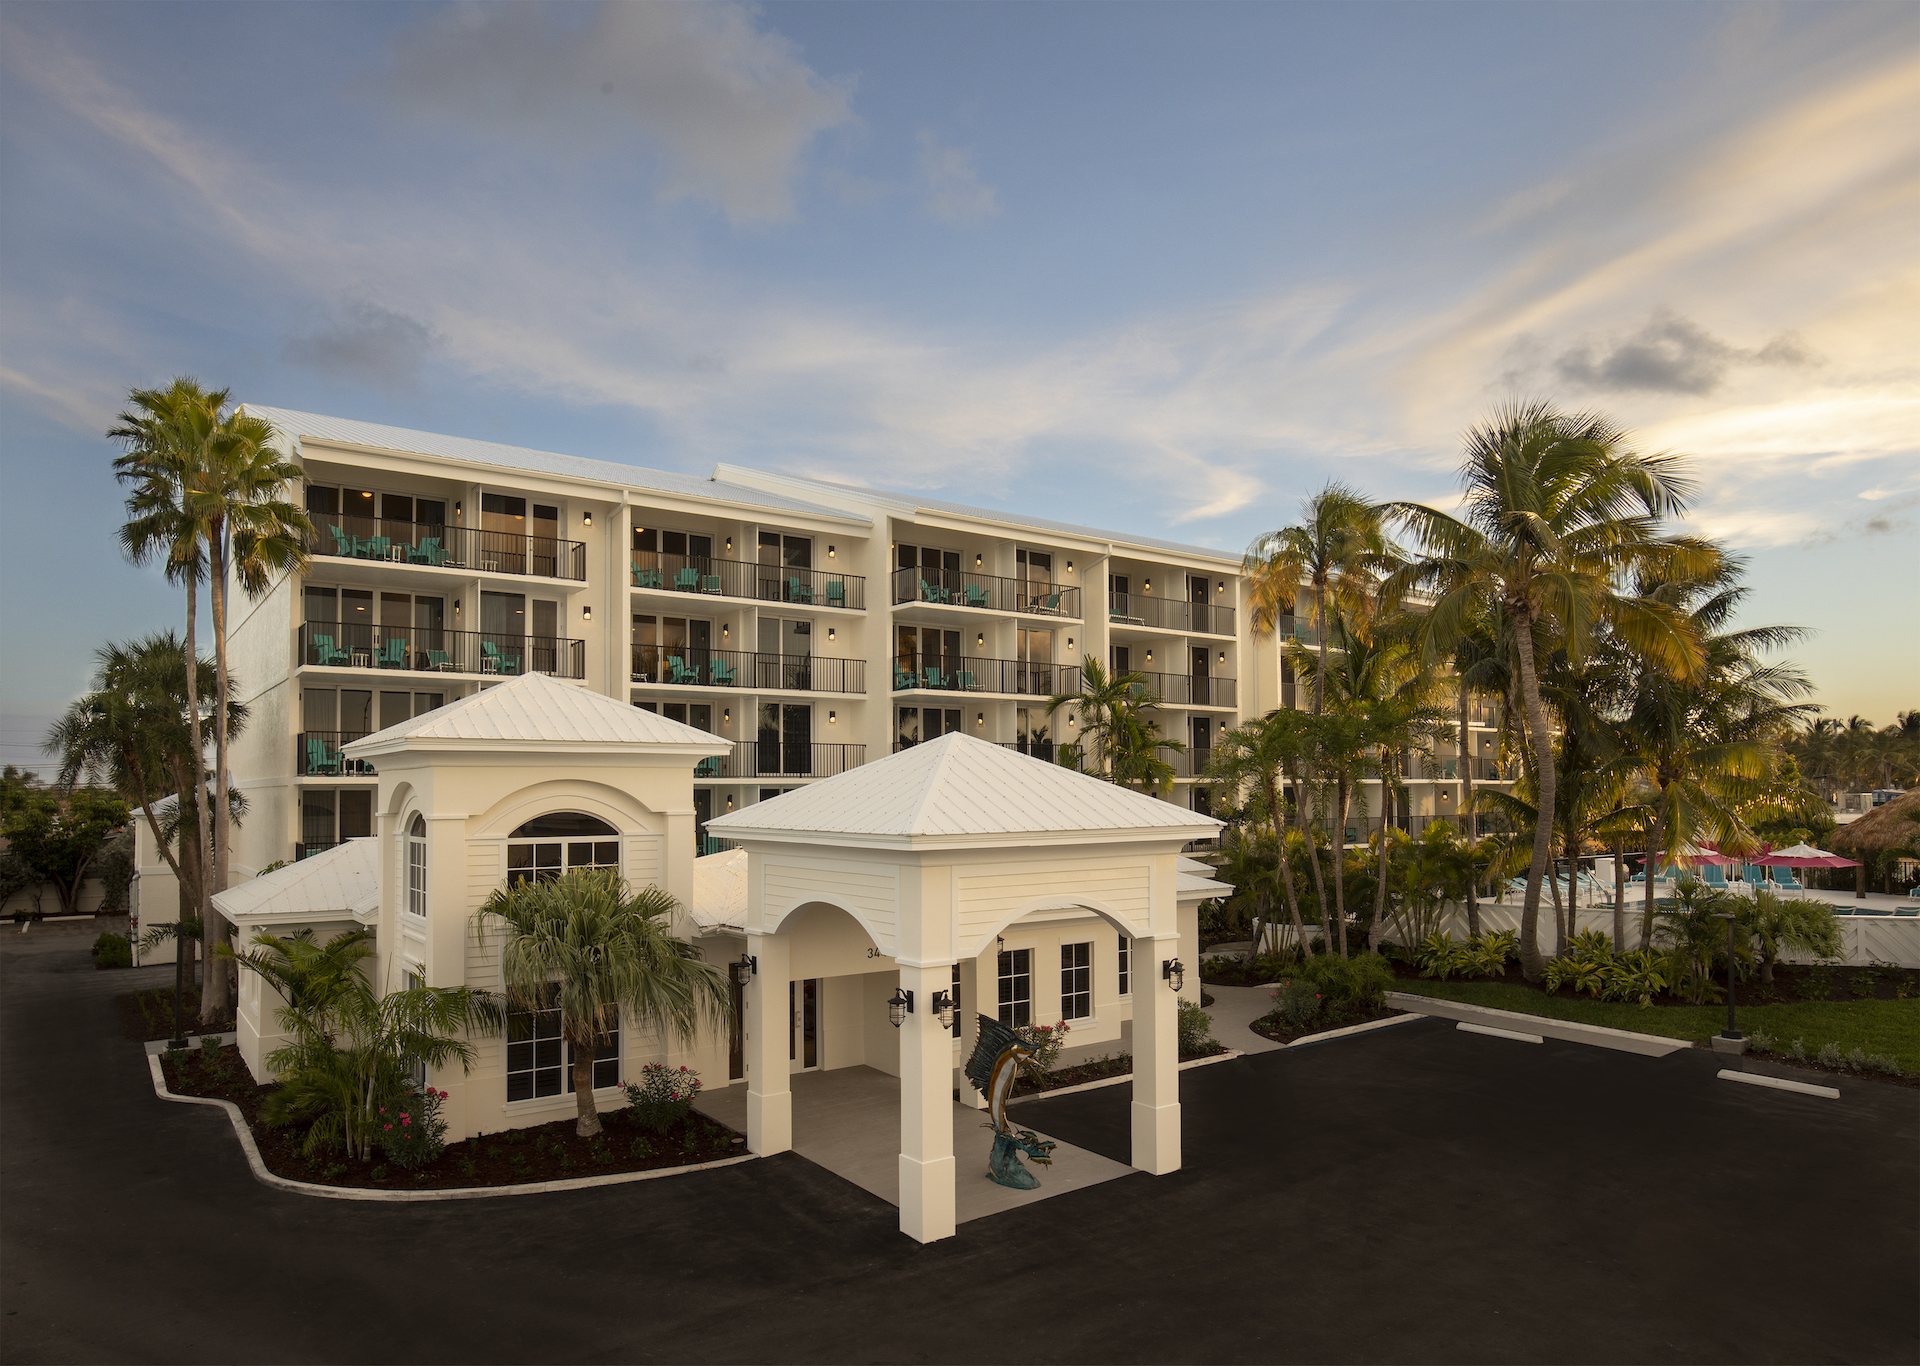 The Laureate Key West Day Exterior image